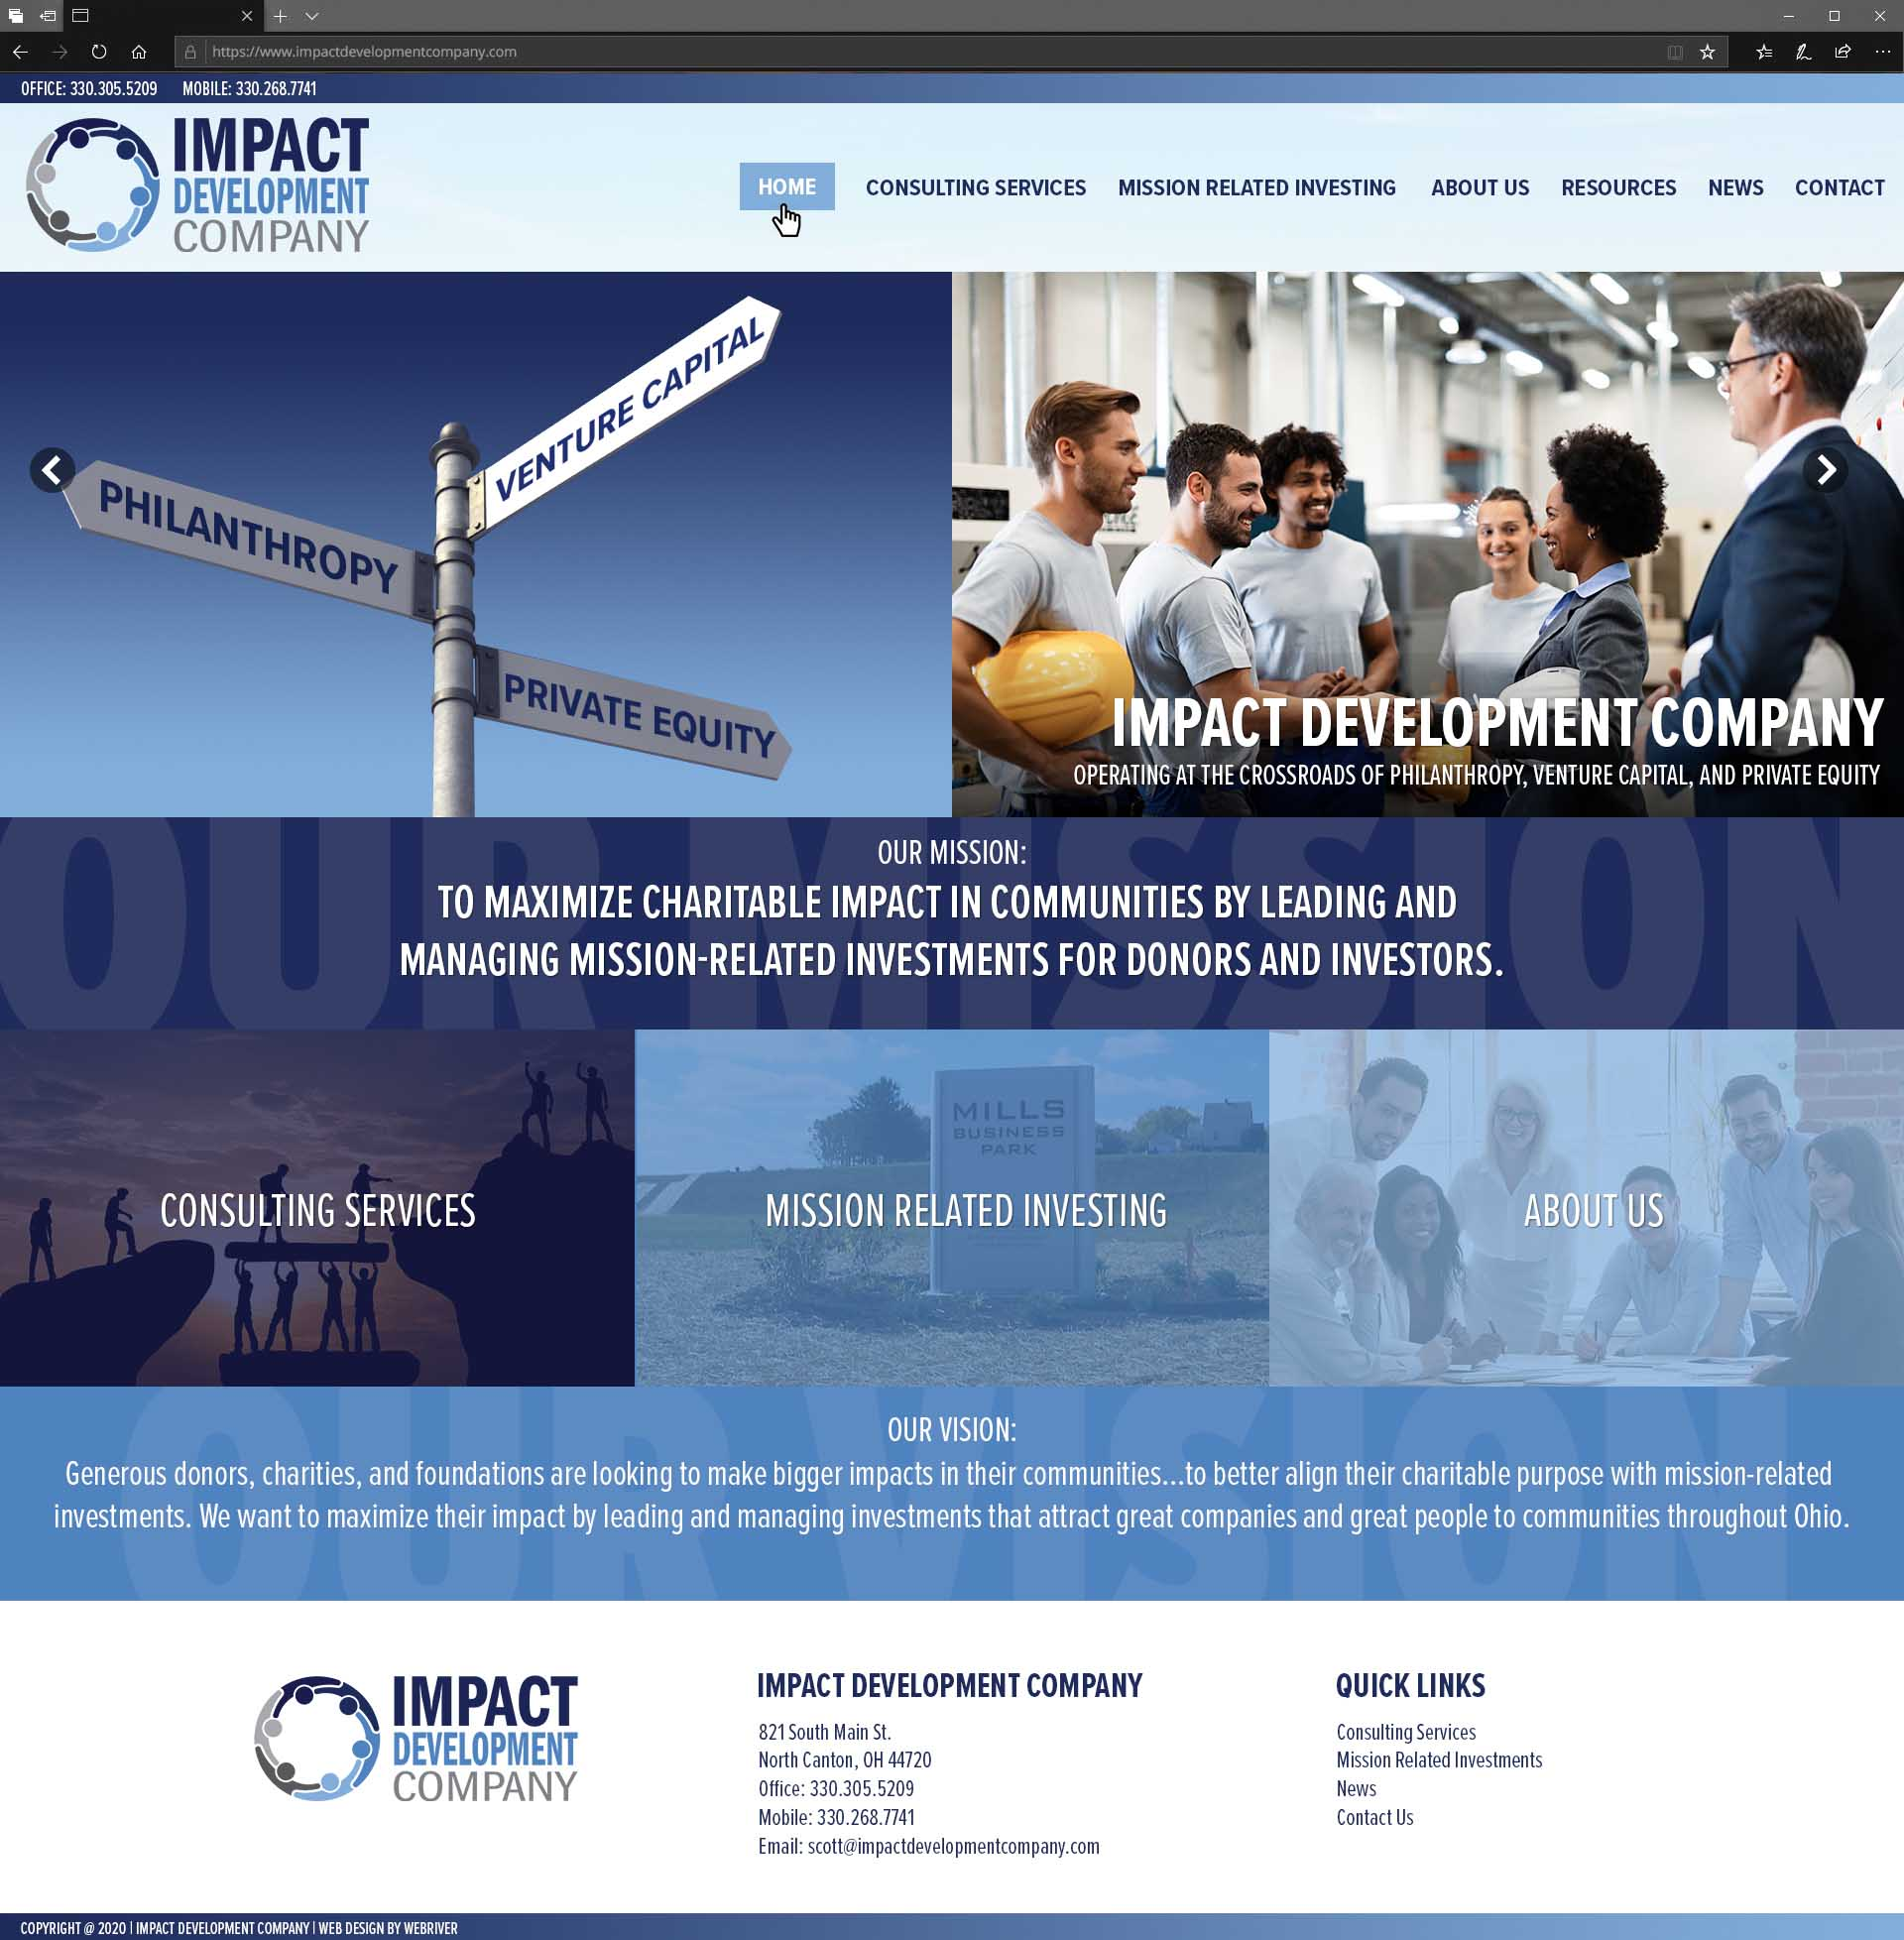 impact-development-group-website-2020